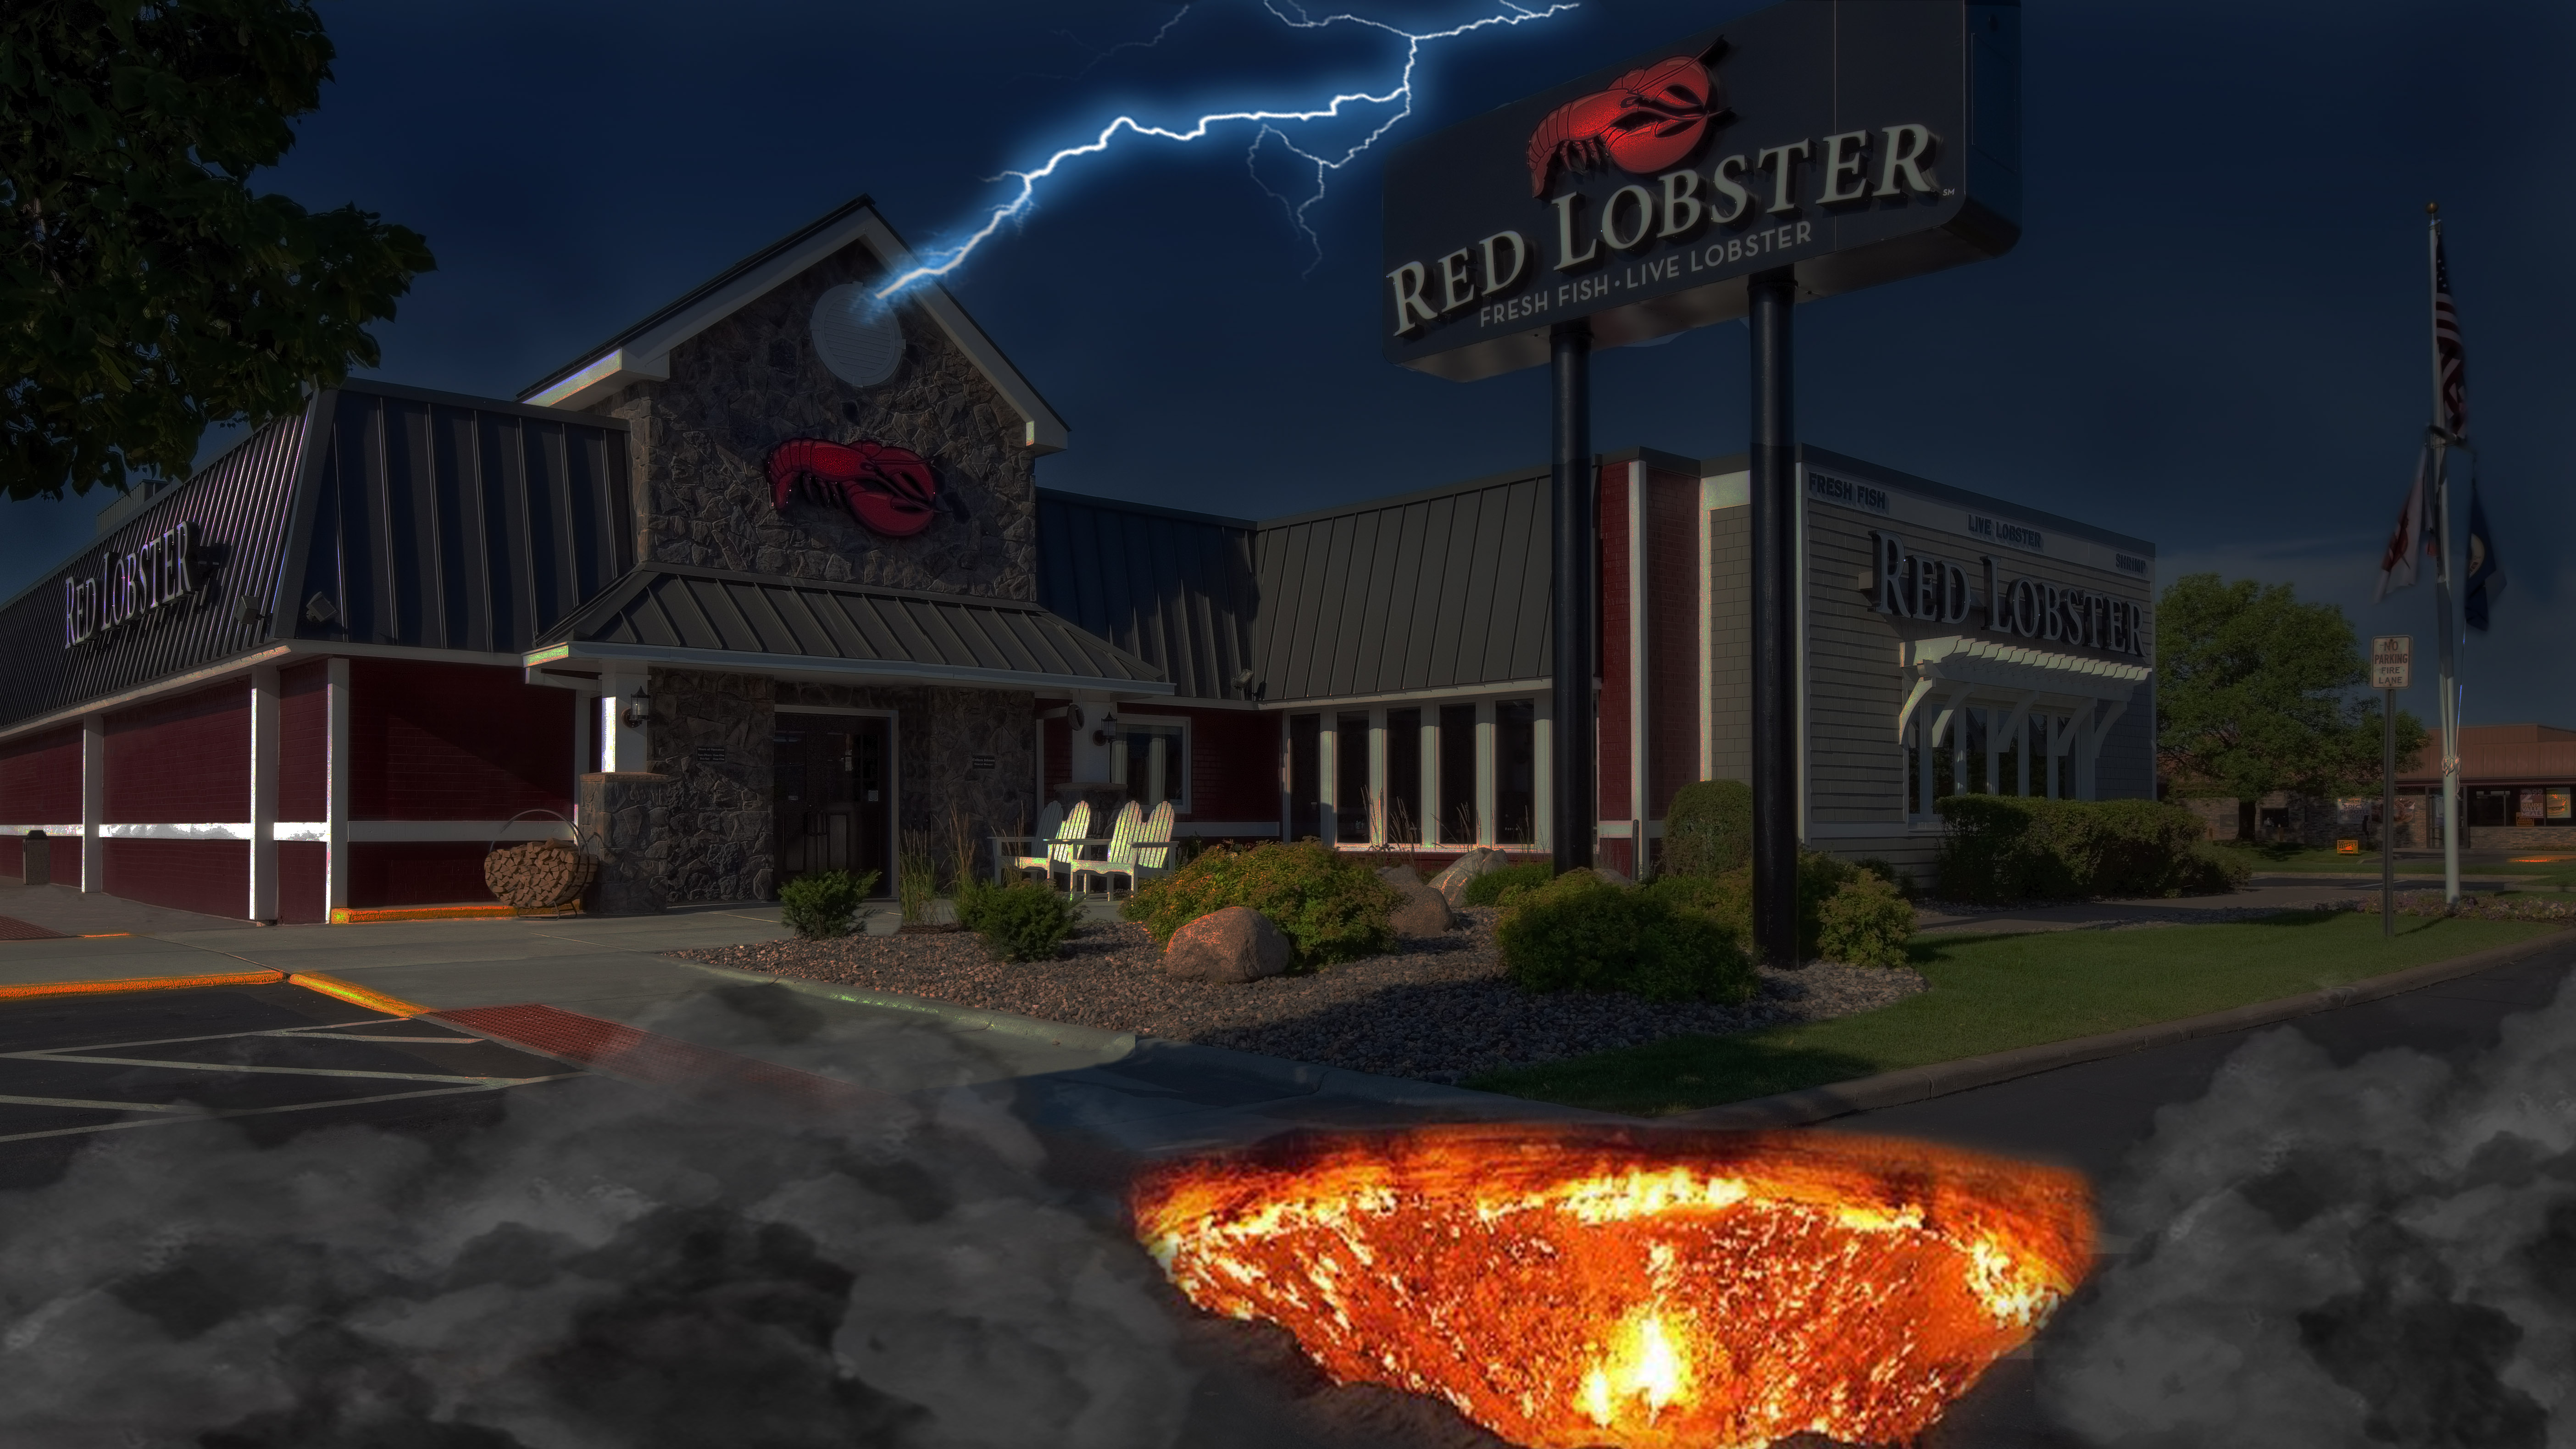 Red Lobster Built On Old Olive Garden Grounds Opens Portal To Hell